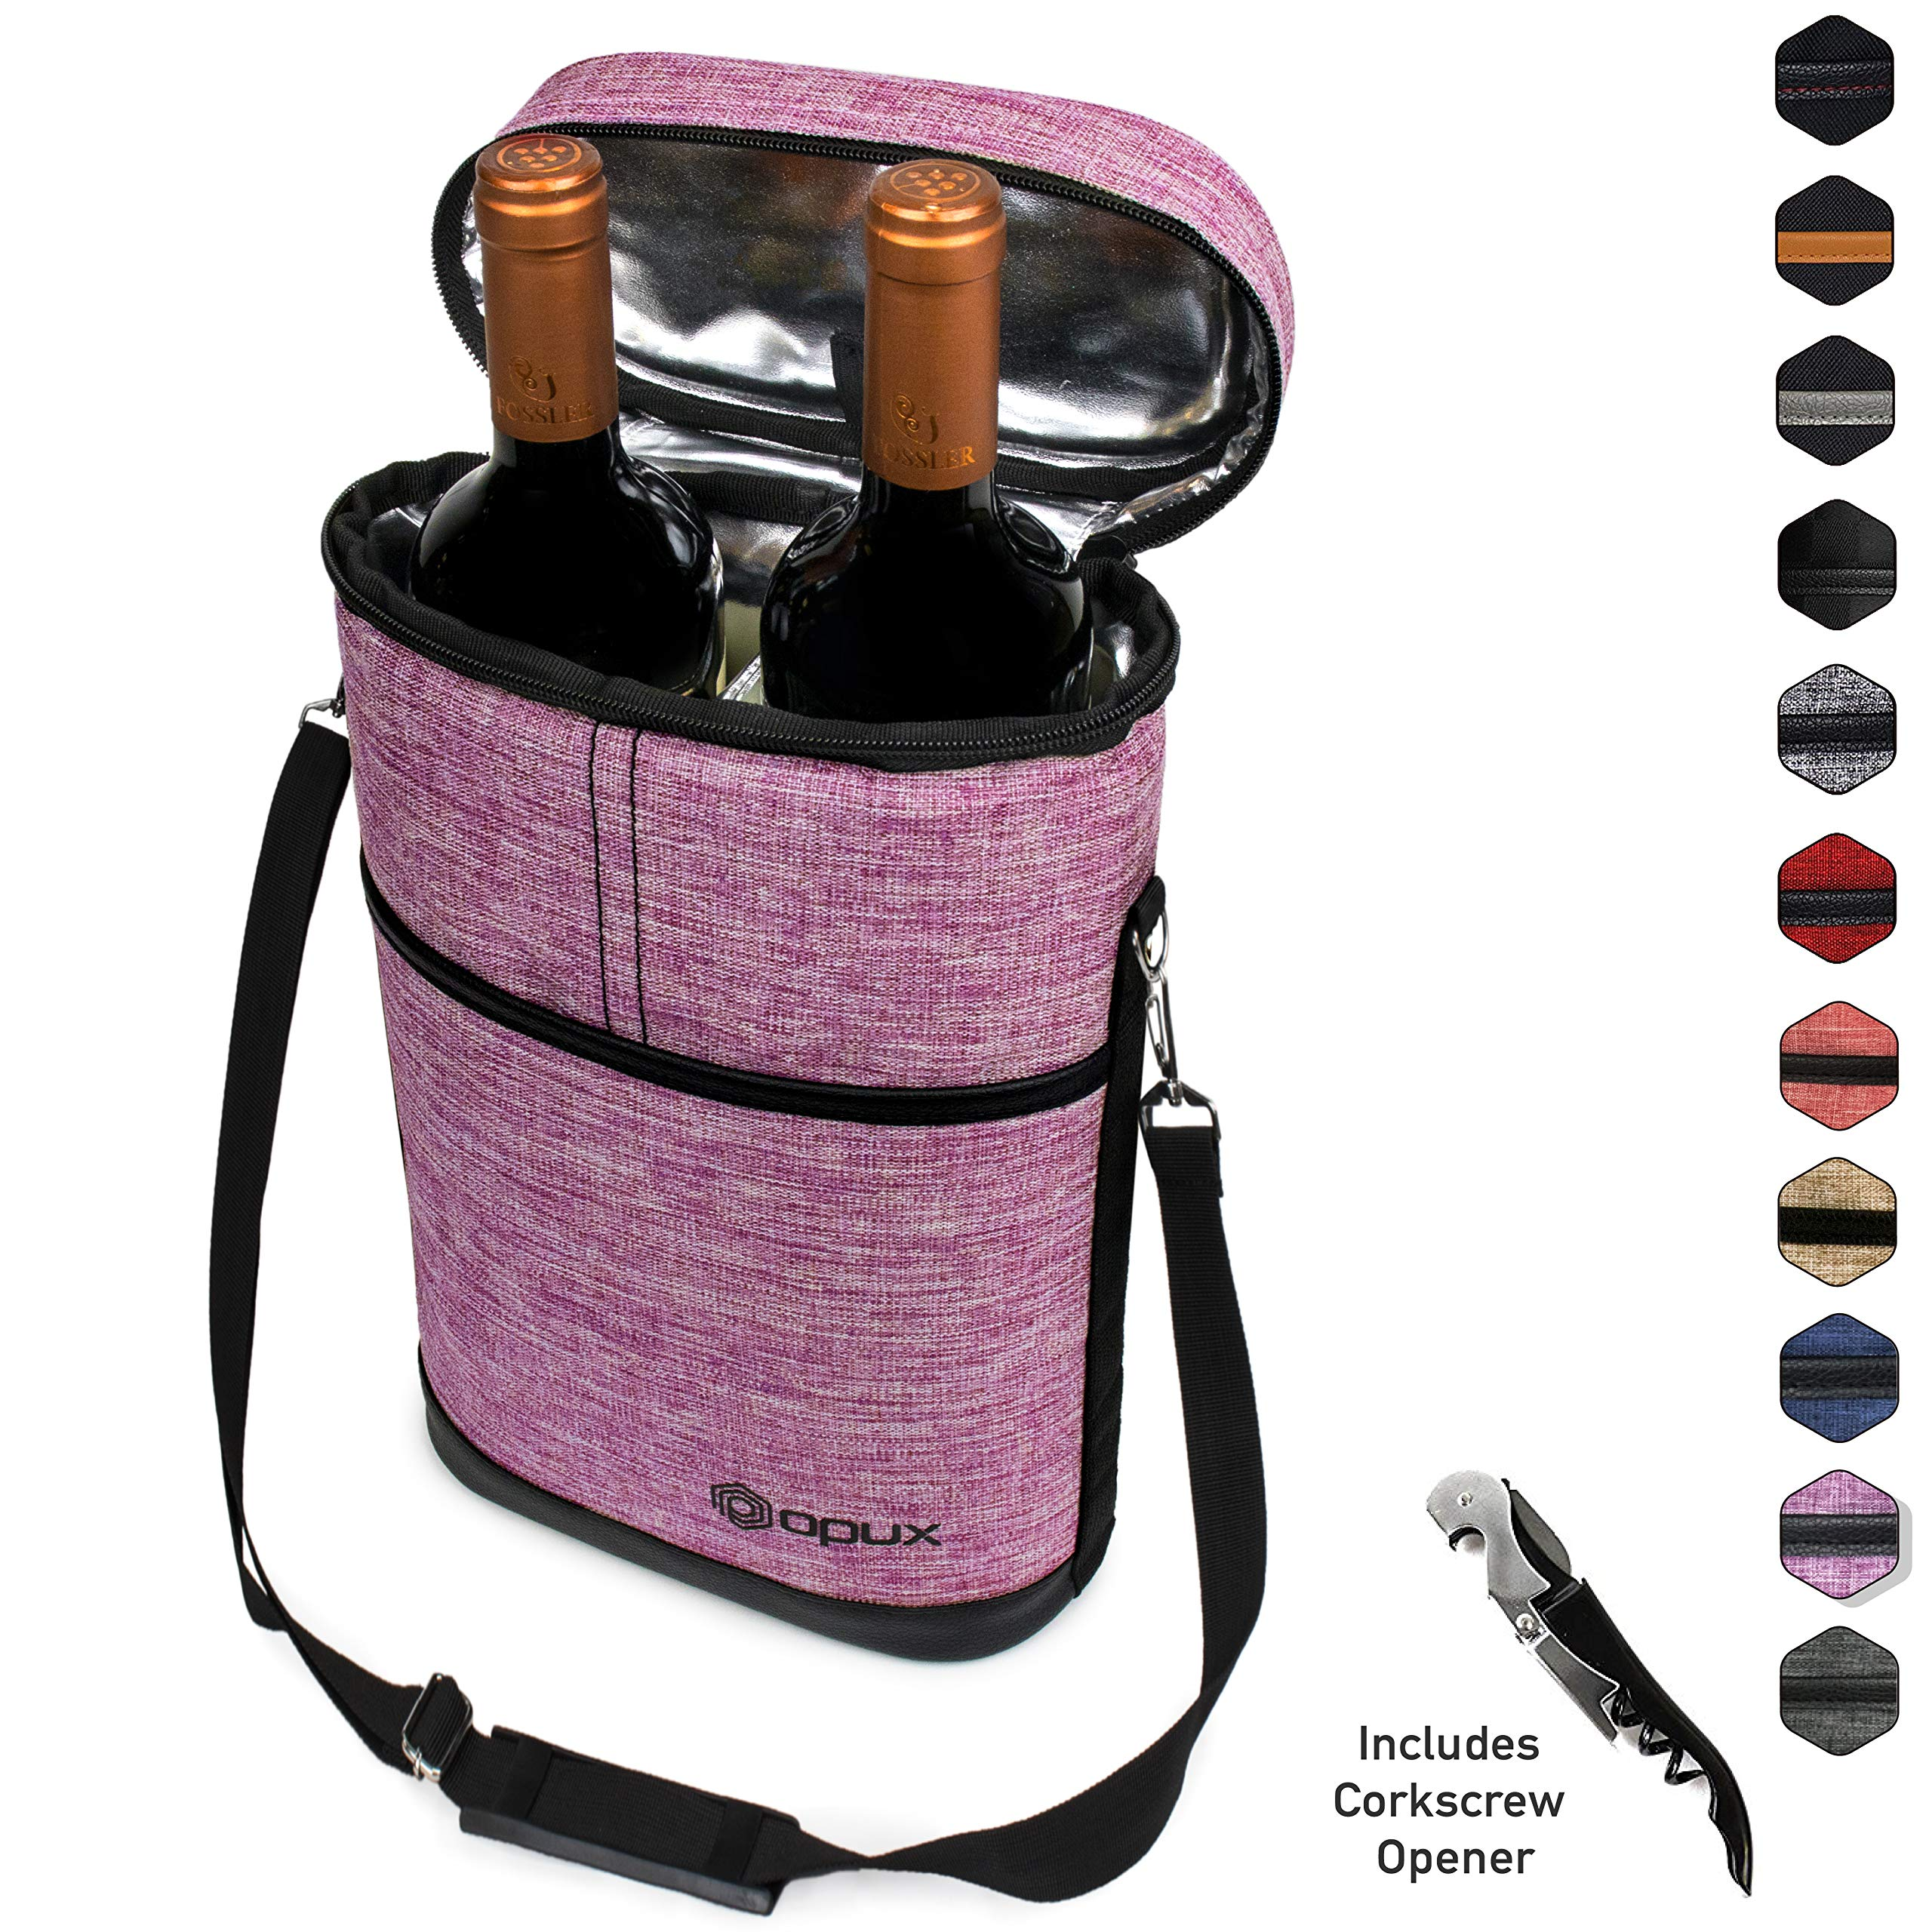 Premium Insulated Wine Carrier Bag by OPUX | Elegant Wine Carrying Tote, Extra Protection, Convenient, Durable Wine Bottle Carrier | Corkscrew Included